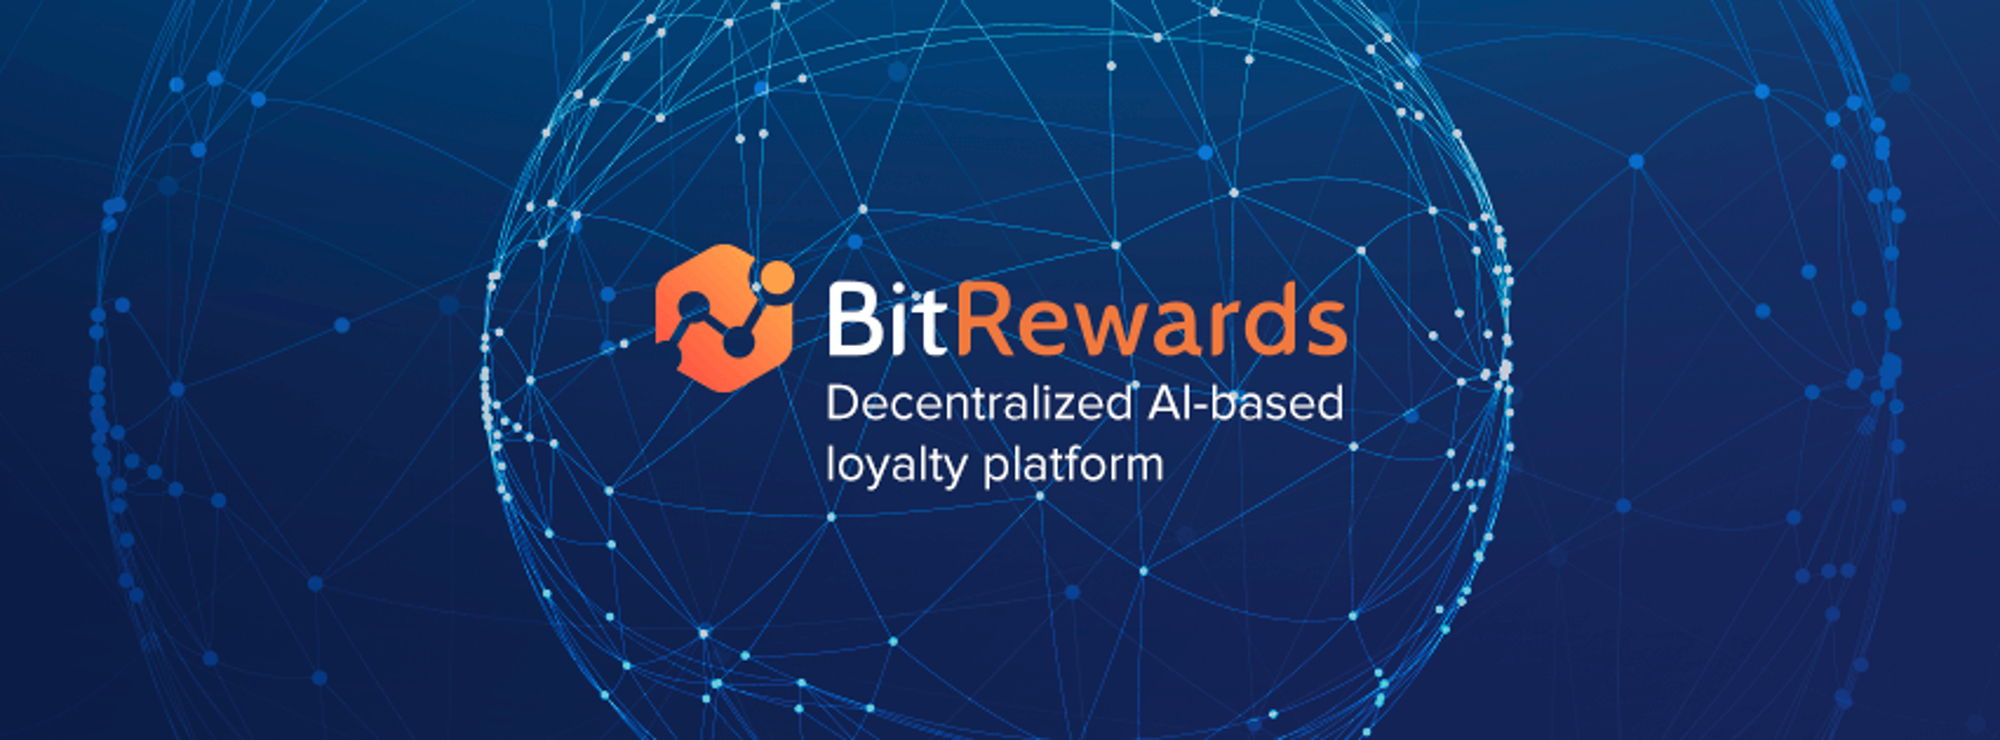 BitRewards-BIT-Airdrop-Cashback-Loyalty-Points-in-Cryptocurrency-header